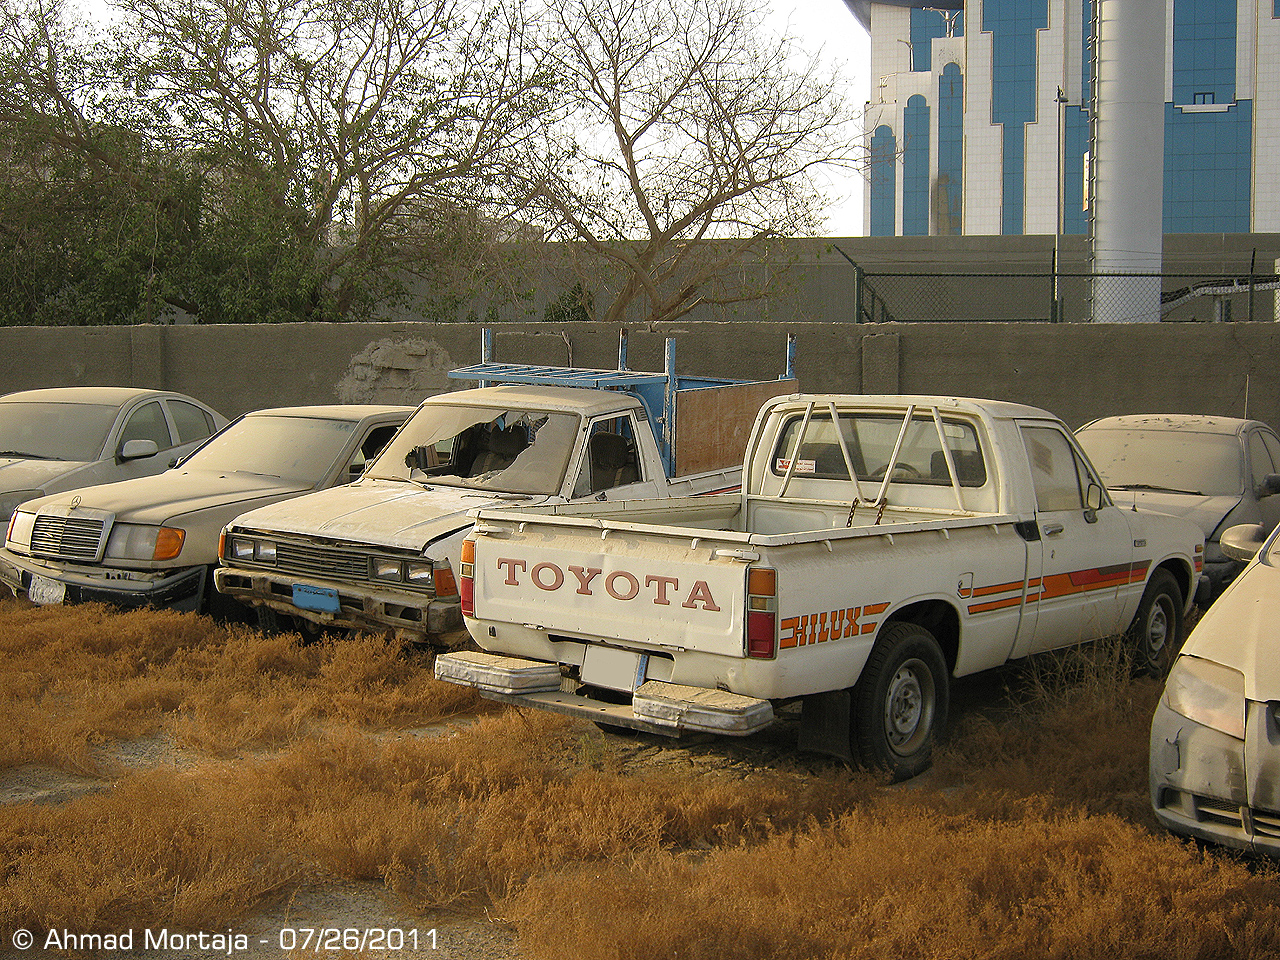 Mercedes-Benz E-Class (W124), Datsun Pick up, and Toyota Hilux ...